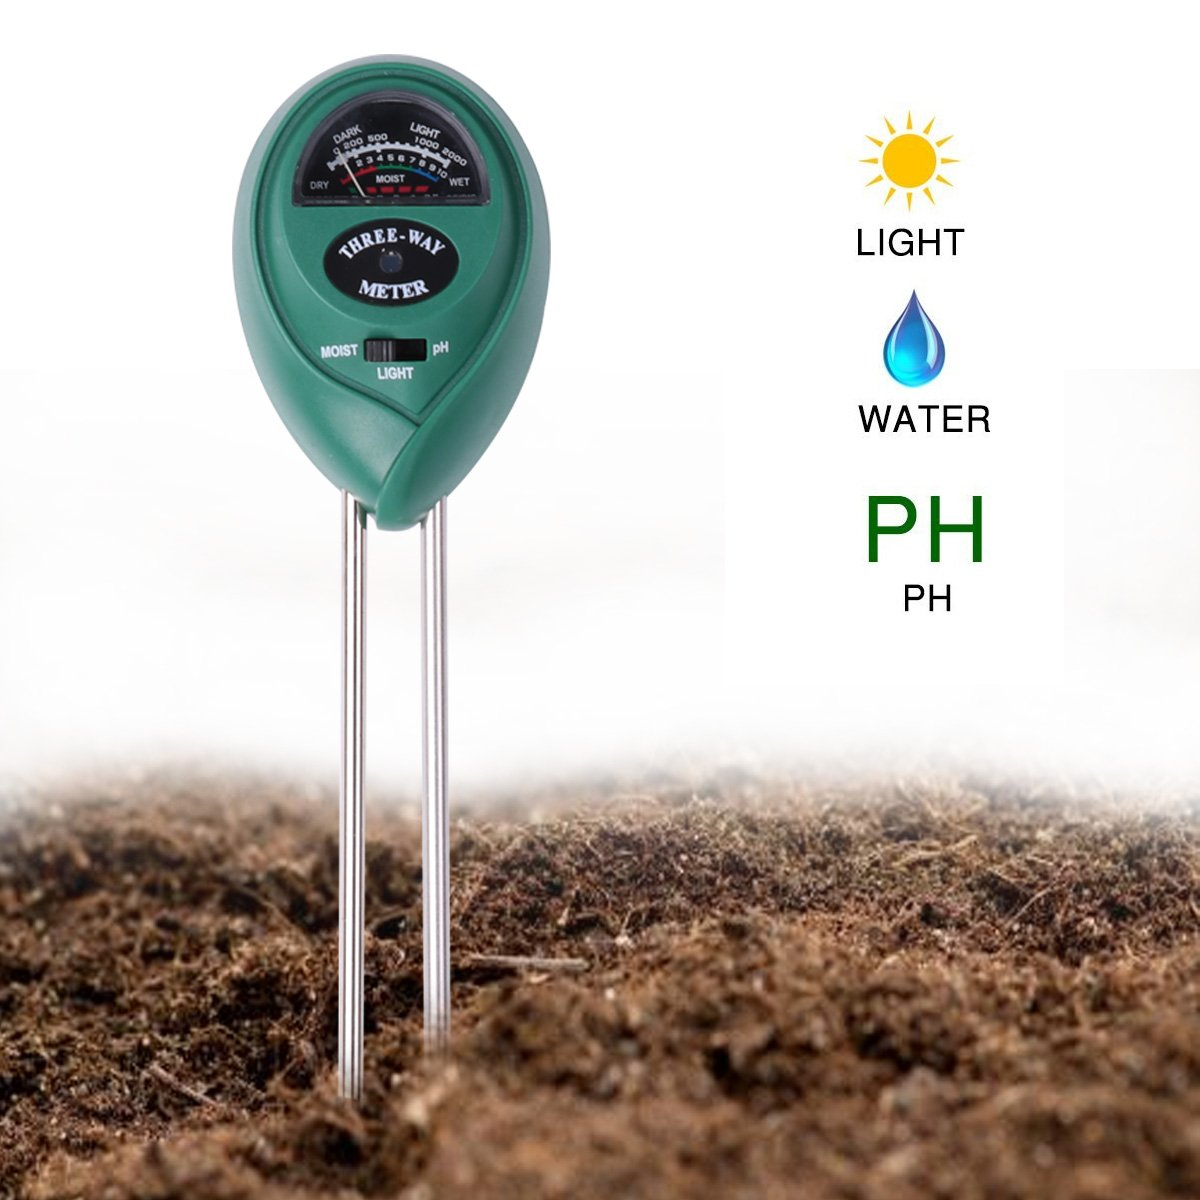 CHICTRY Soil Moisture Meter Soil pH Meter Light and PH Acidity Tester 3 in 1 Soil Tester with Accurate Probe for Indoor Outdoor Garden Farm Lawn (No Battery Needed)